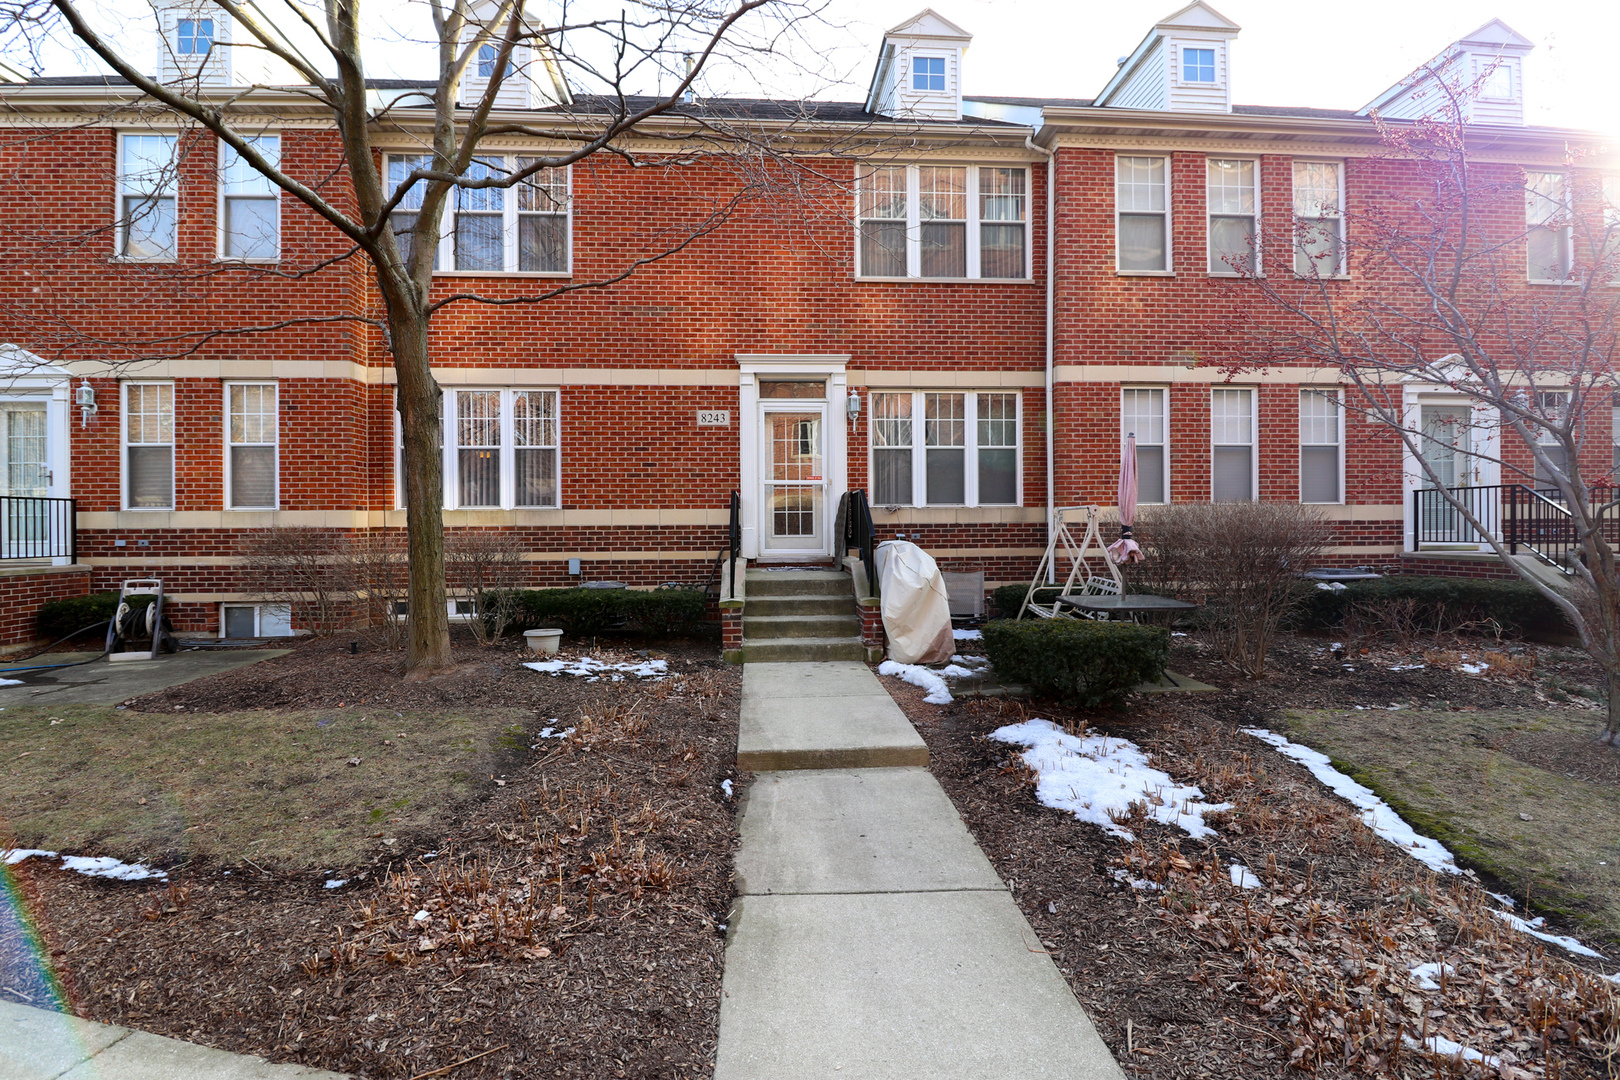 8243 Lincoln Avenue, Skokie in Cook County, IL 60077 Home for Sale